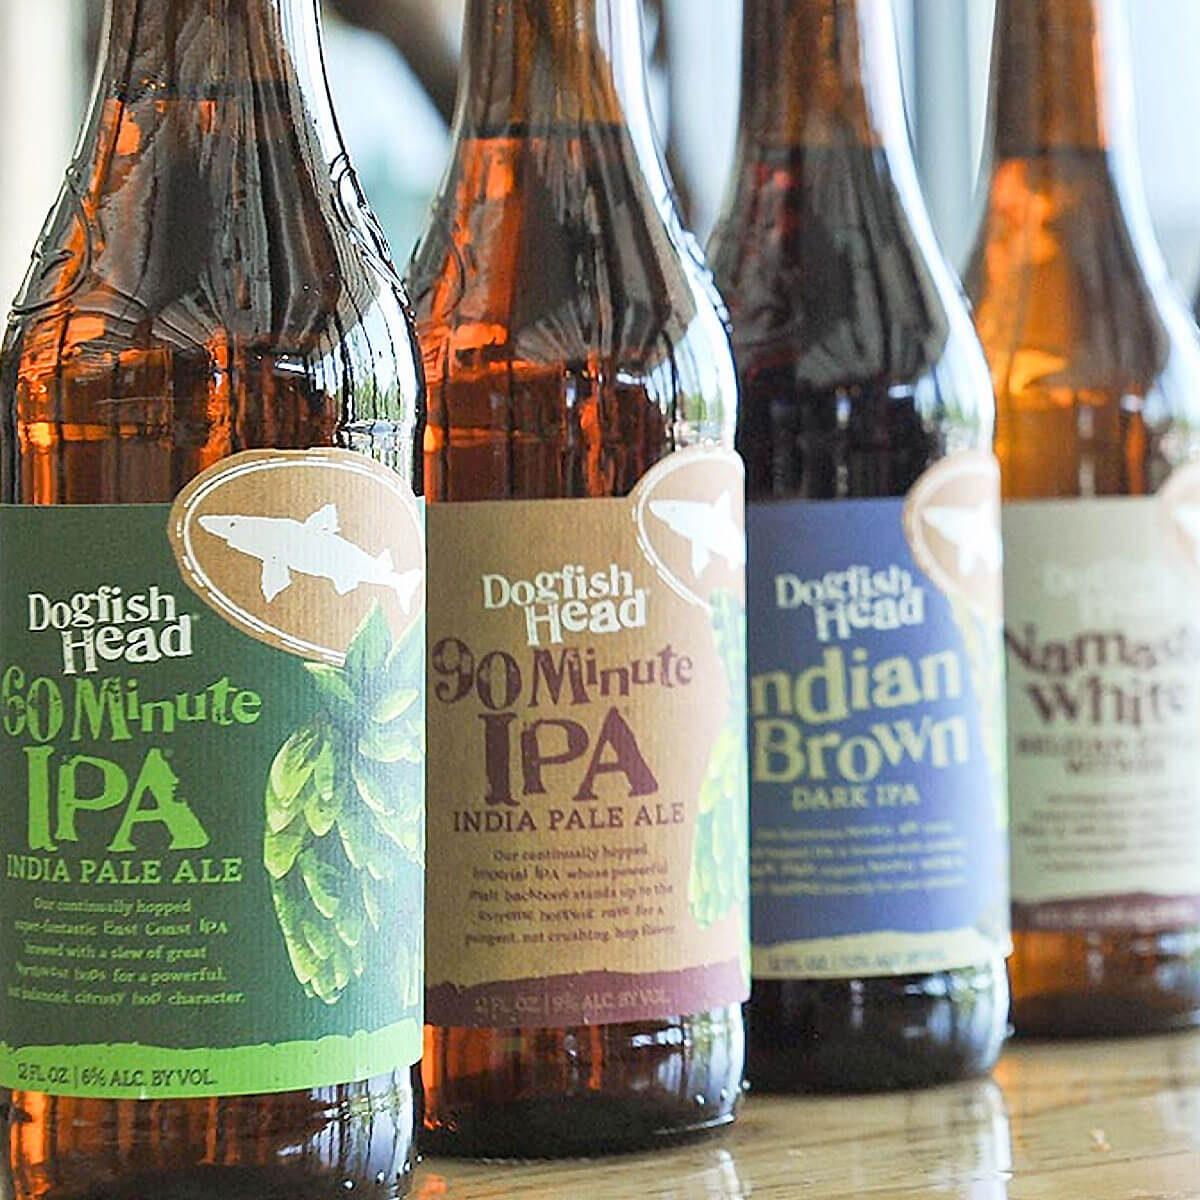 Lineup of bottled beers offered by Dogfish Head Craft Brewery